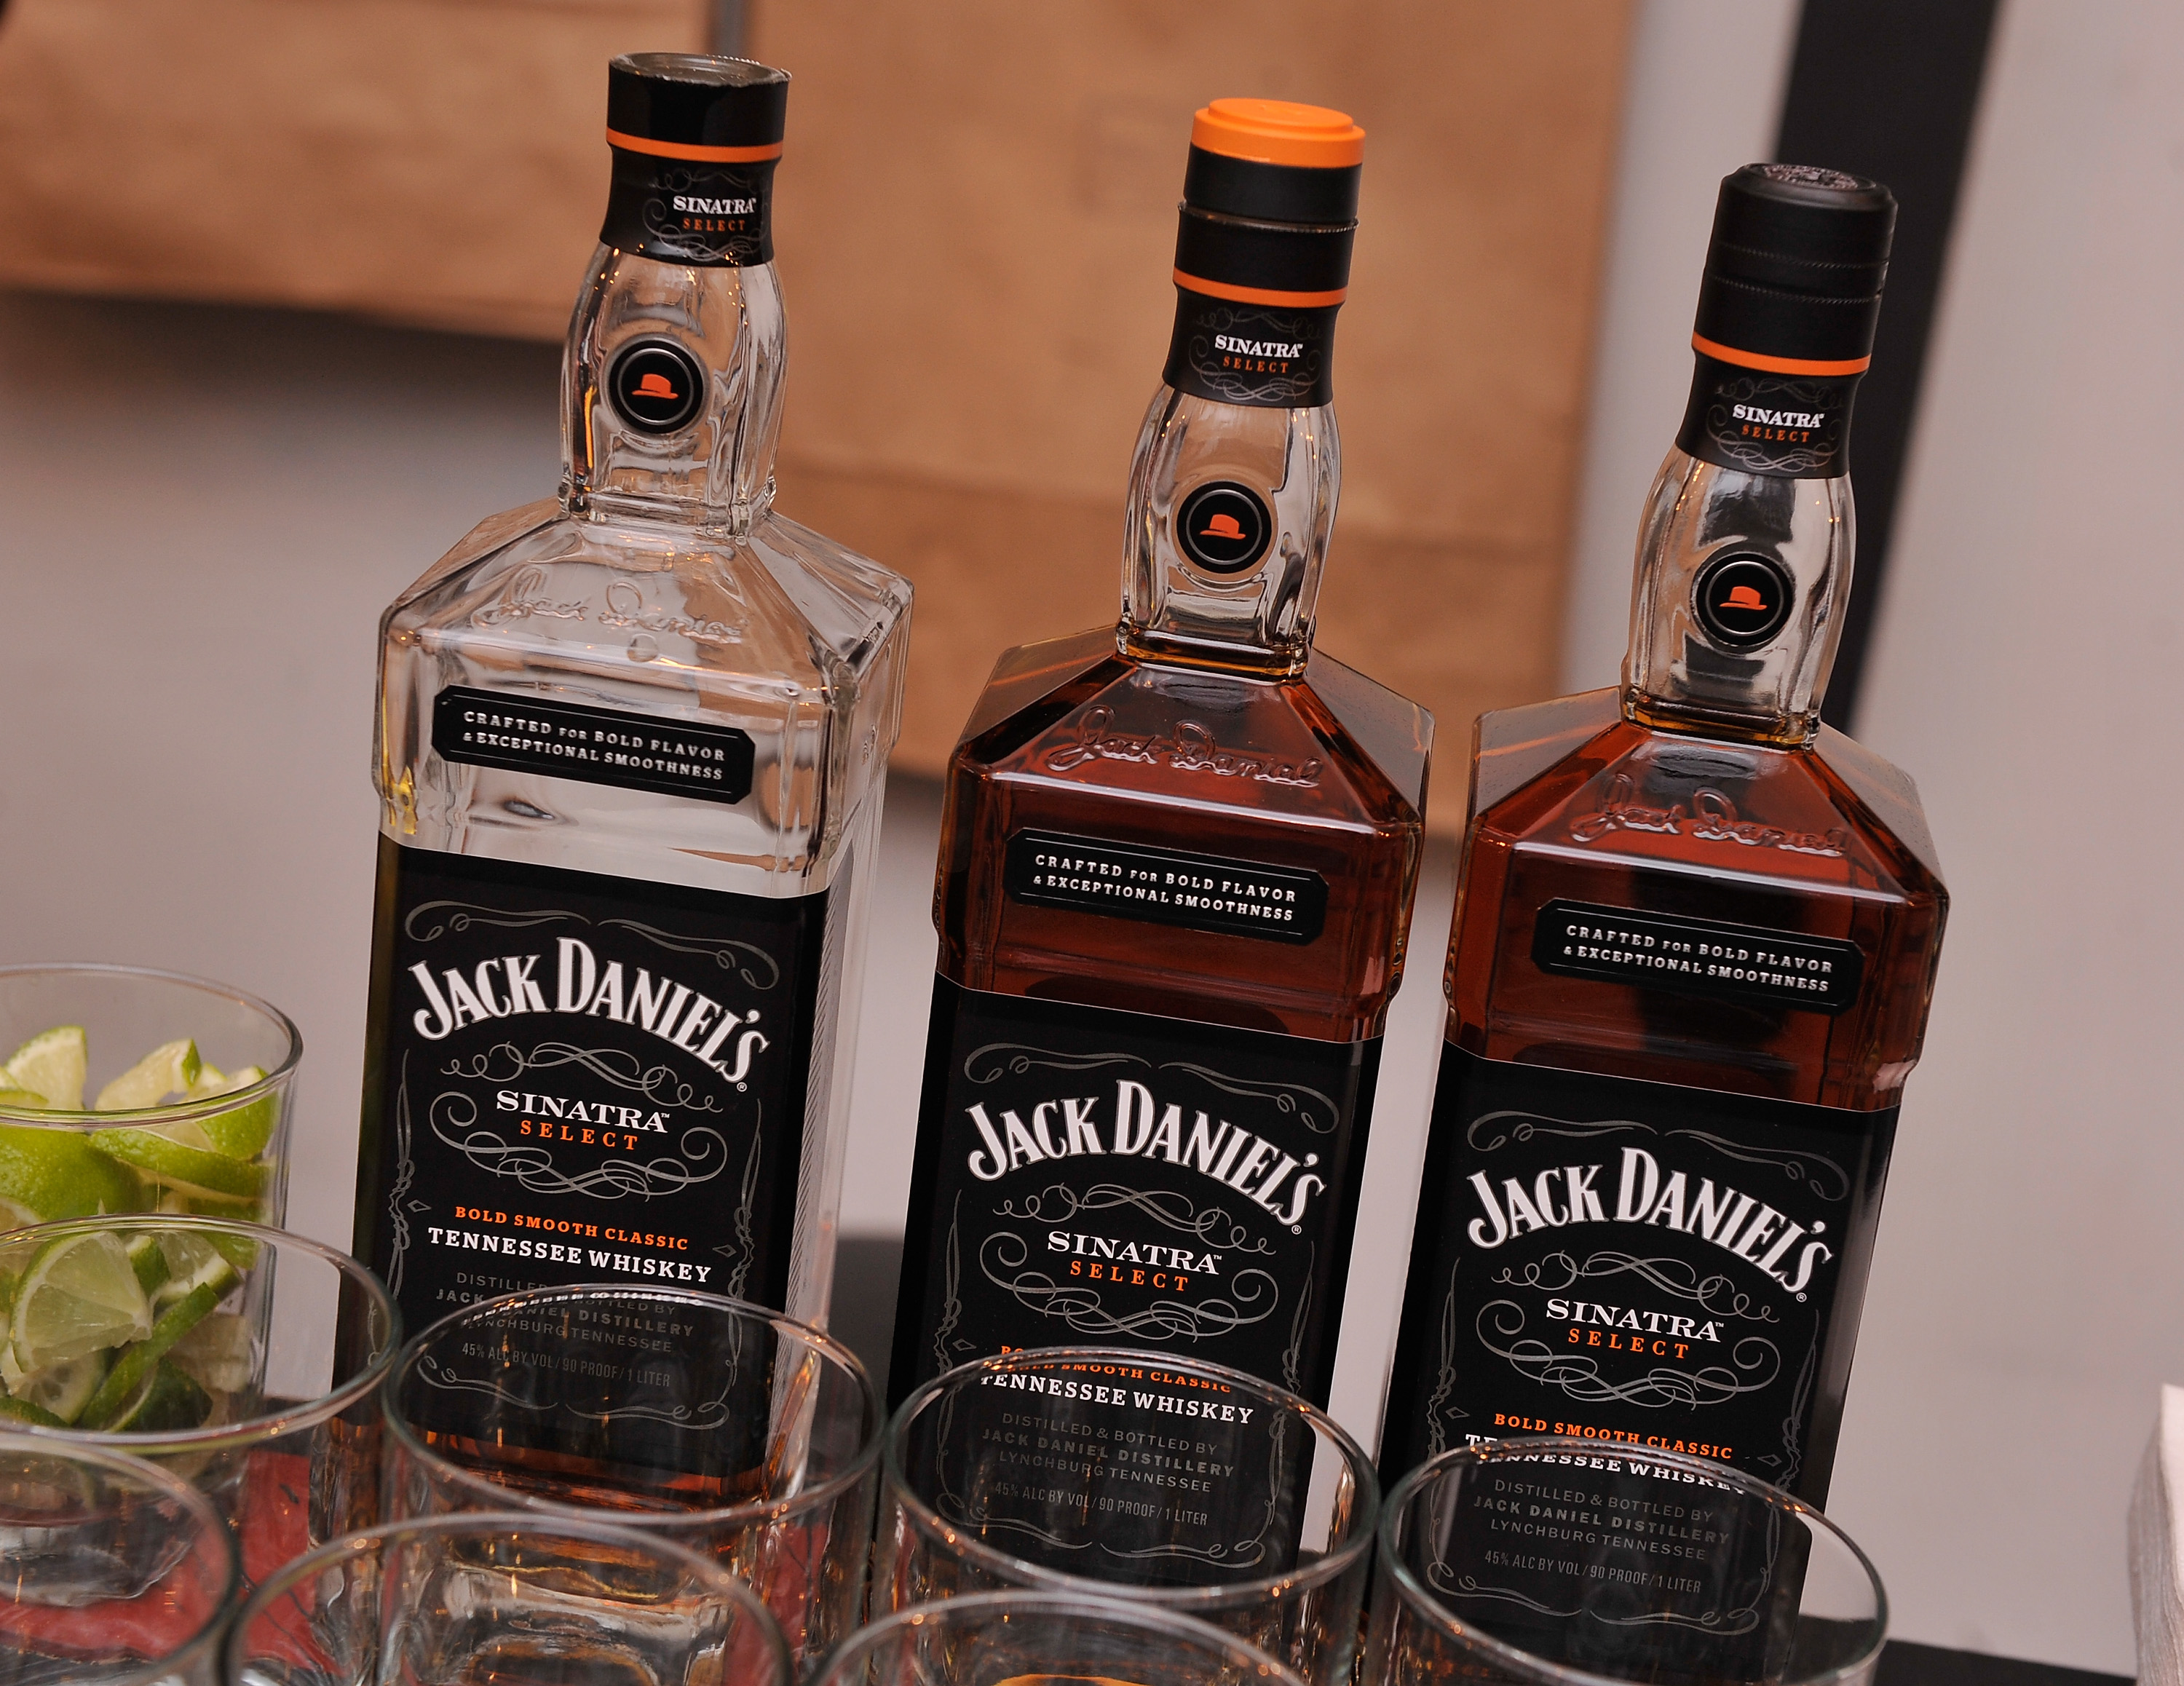 Jack Daniels & New York Magazine Celebrate Jack Daniels' Sinatra Select